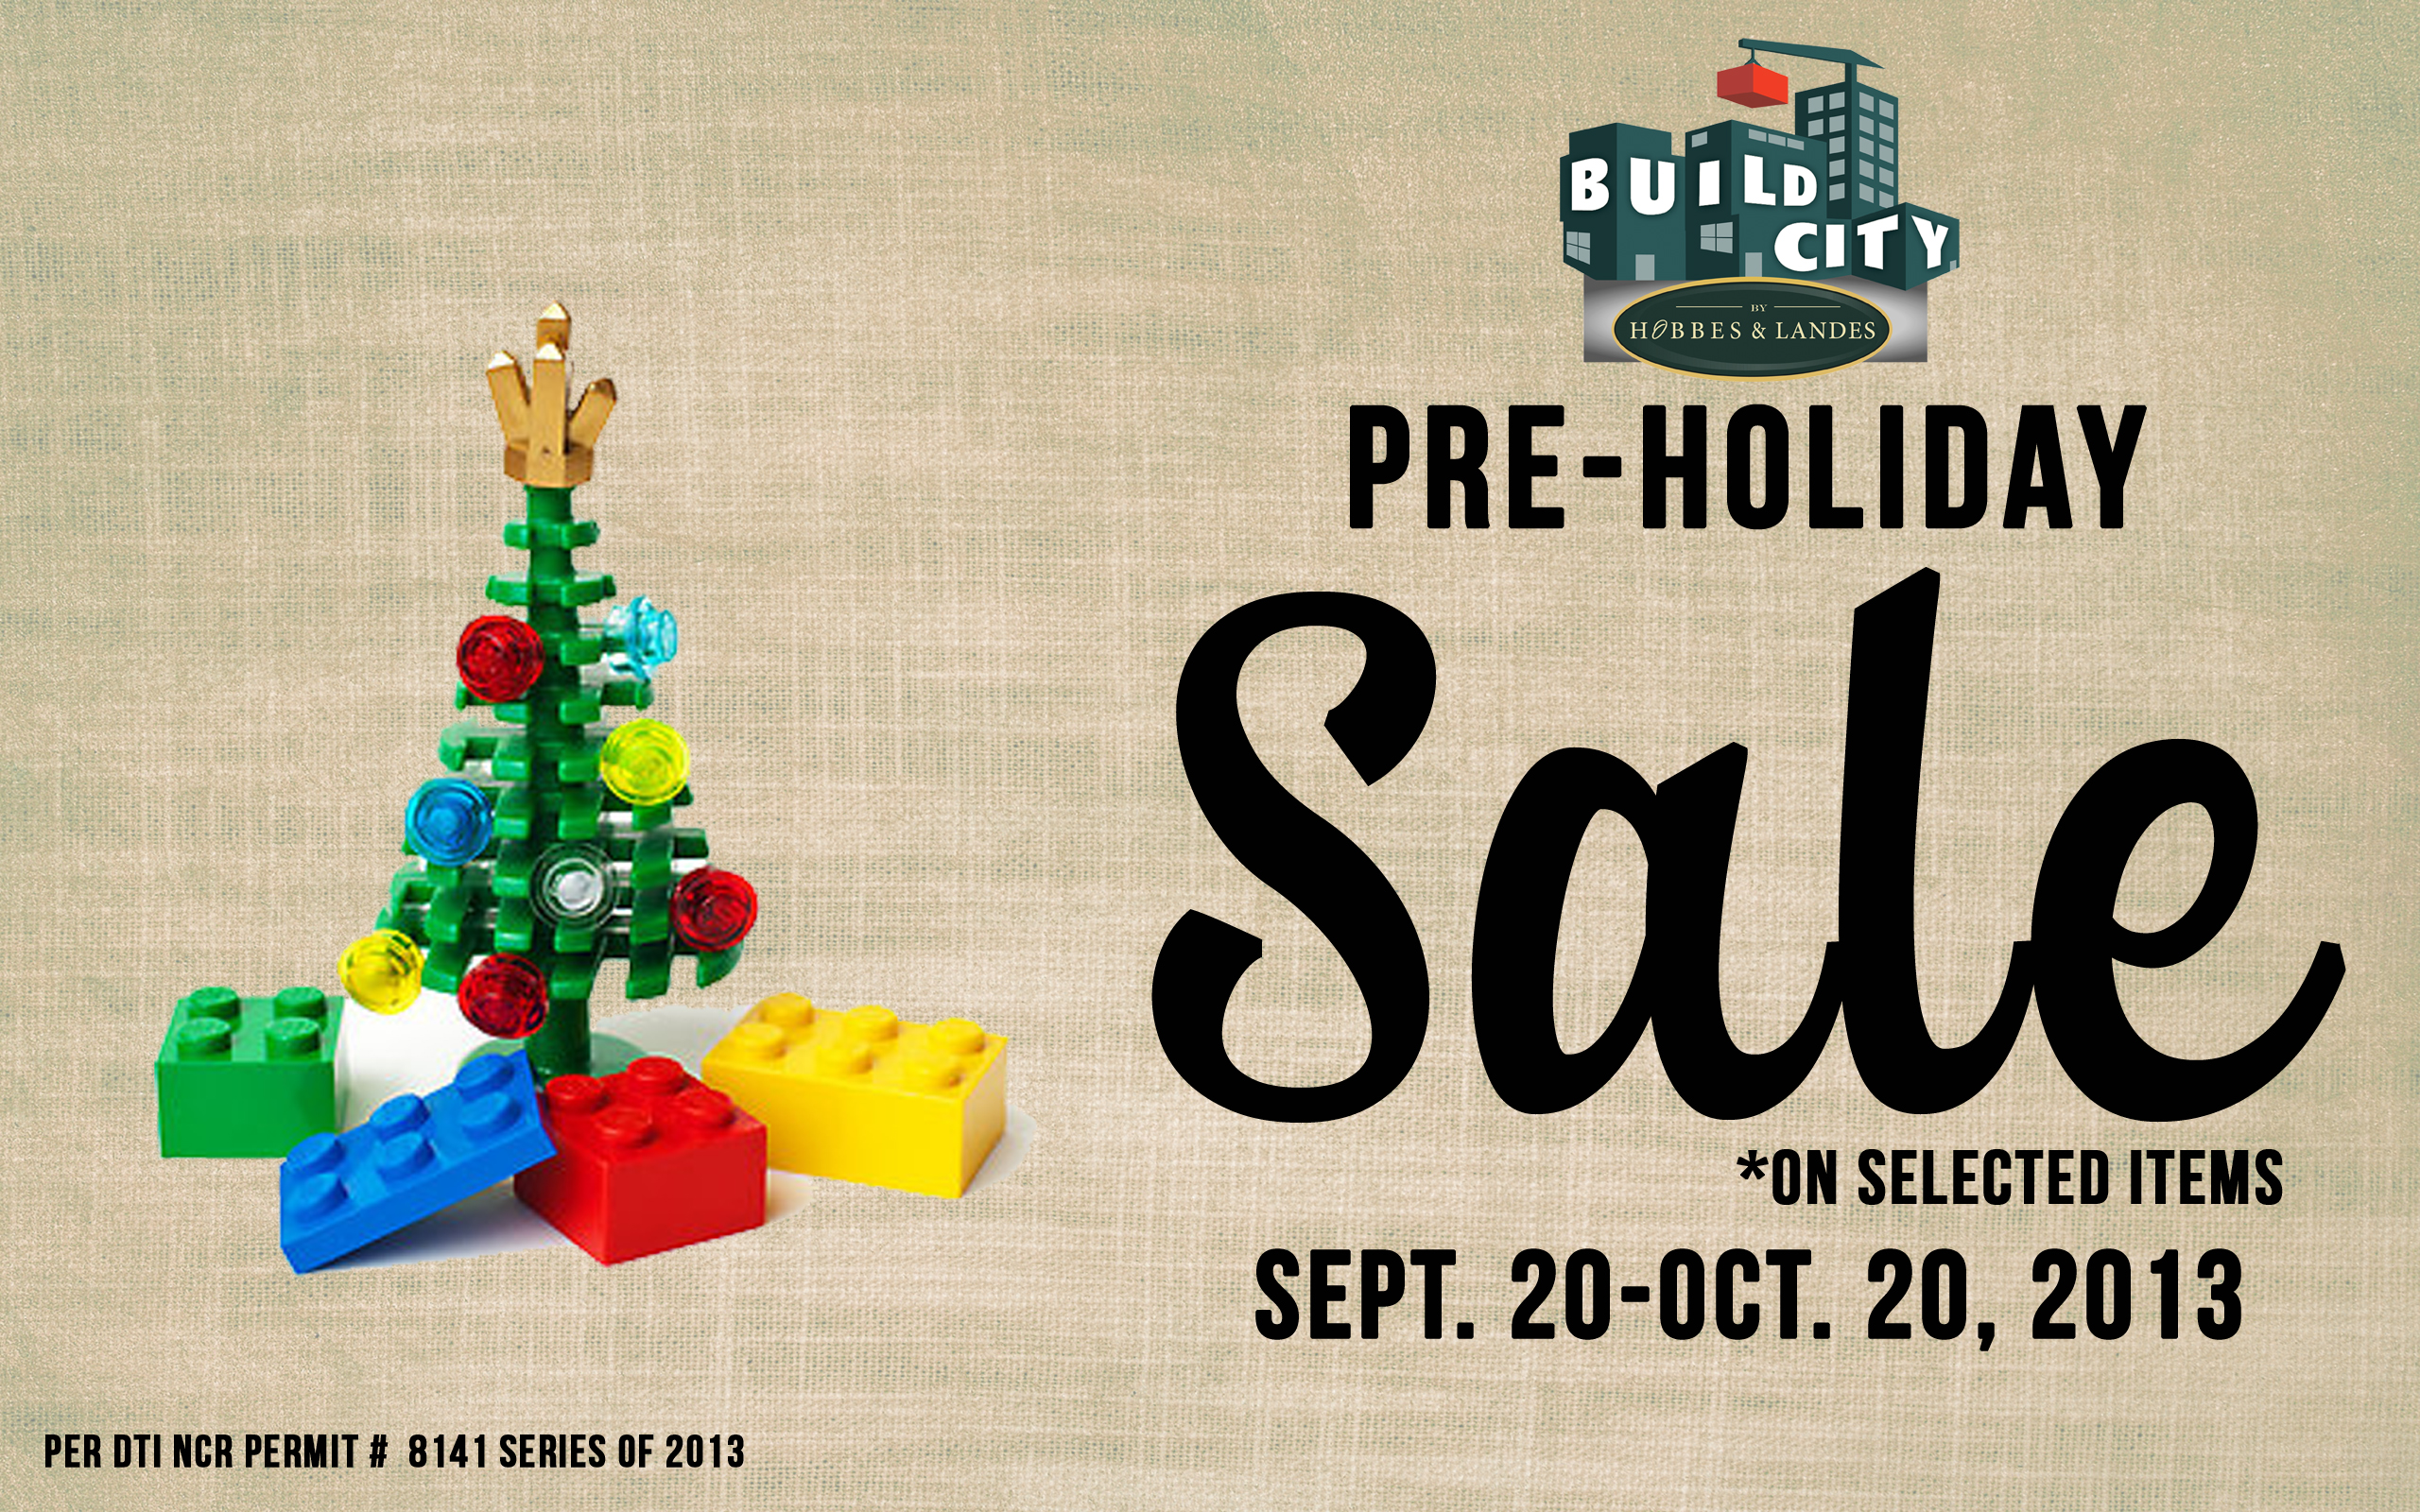 Build City Pre-Holiday Sale September - October 2013